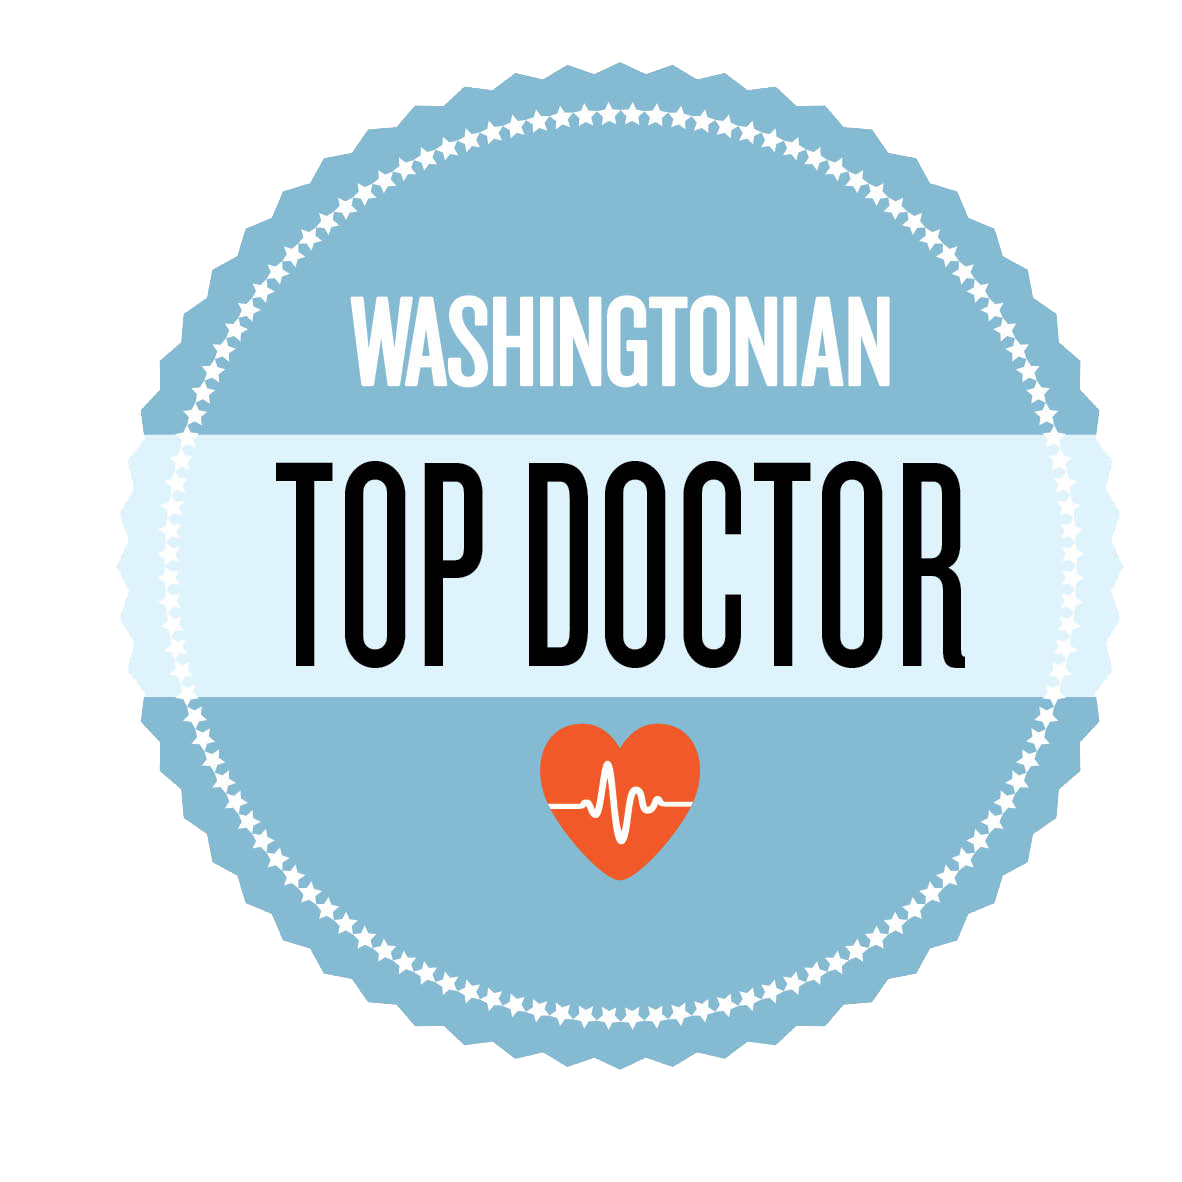 washingtoniantopdoctor.png